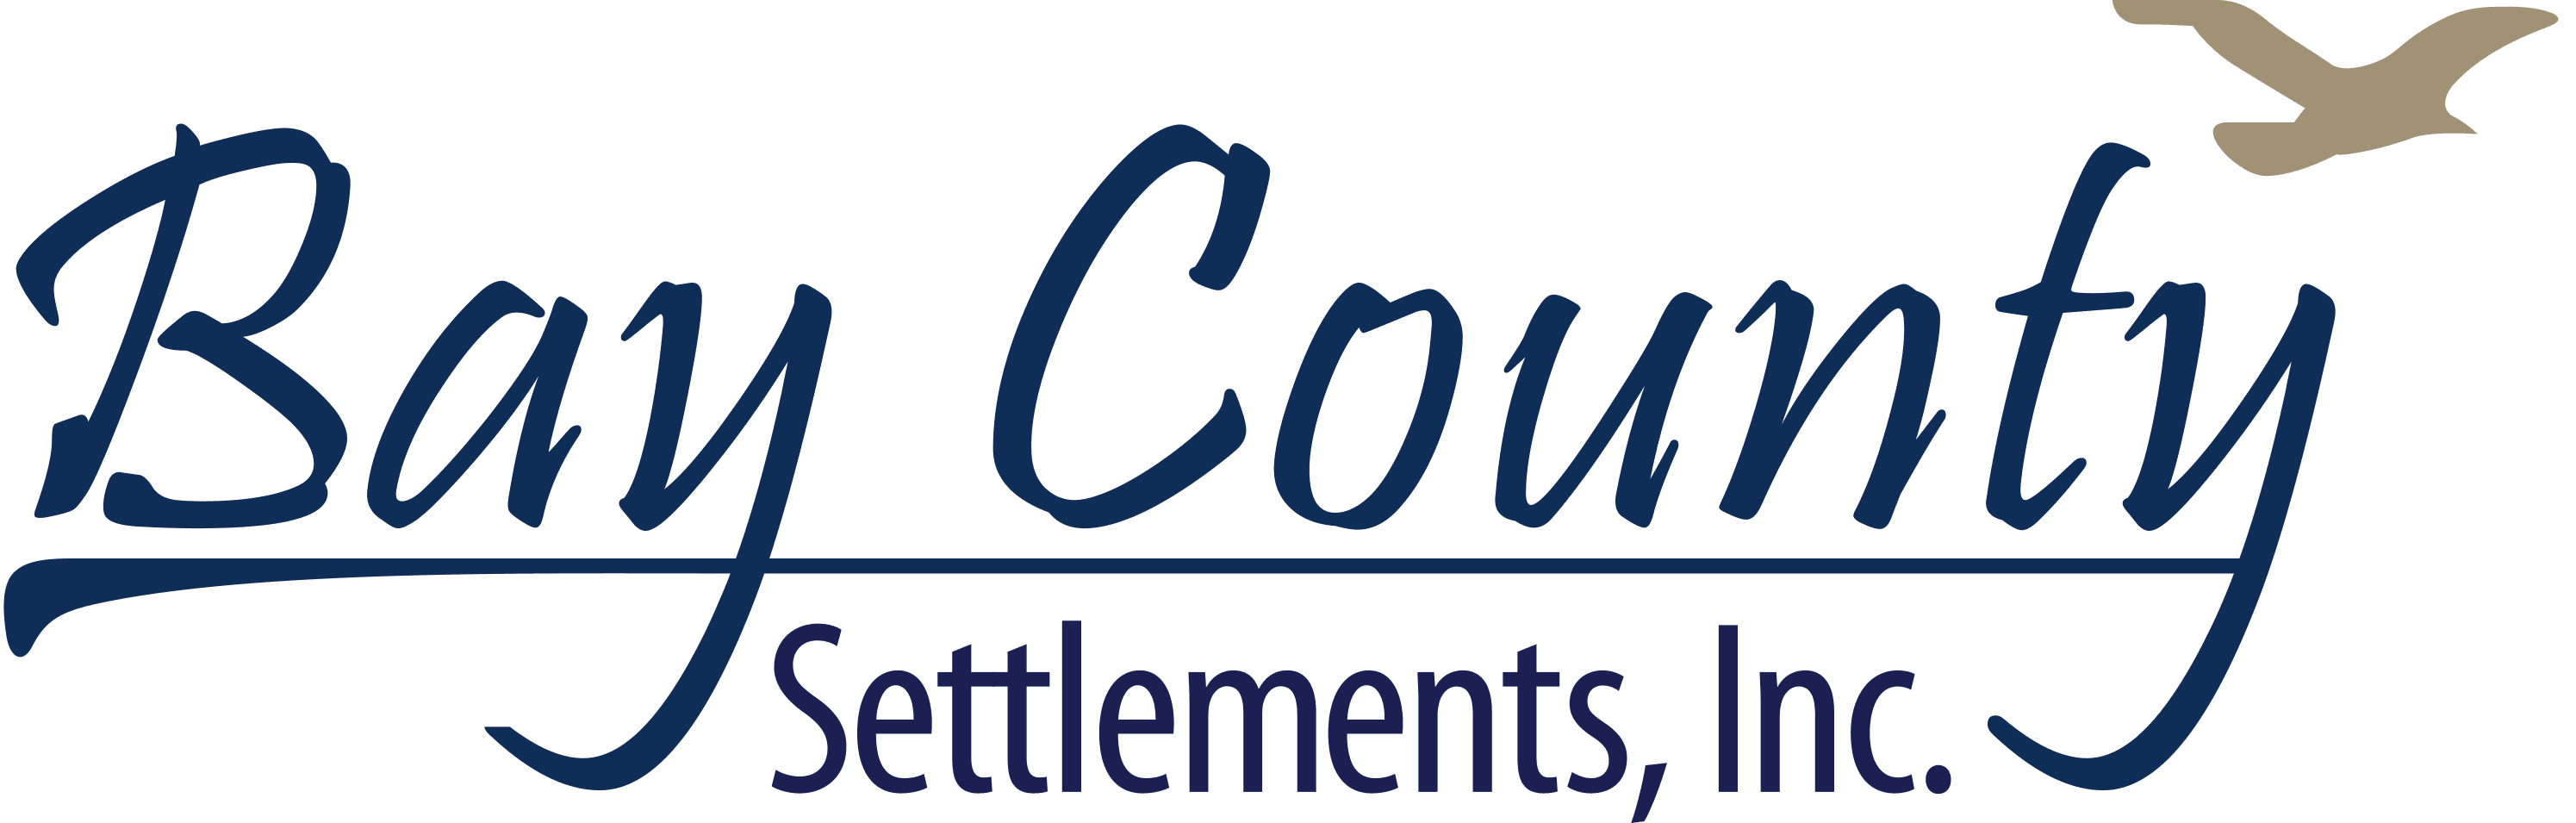 Bay County Settlements logo